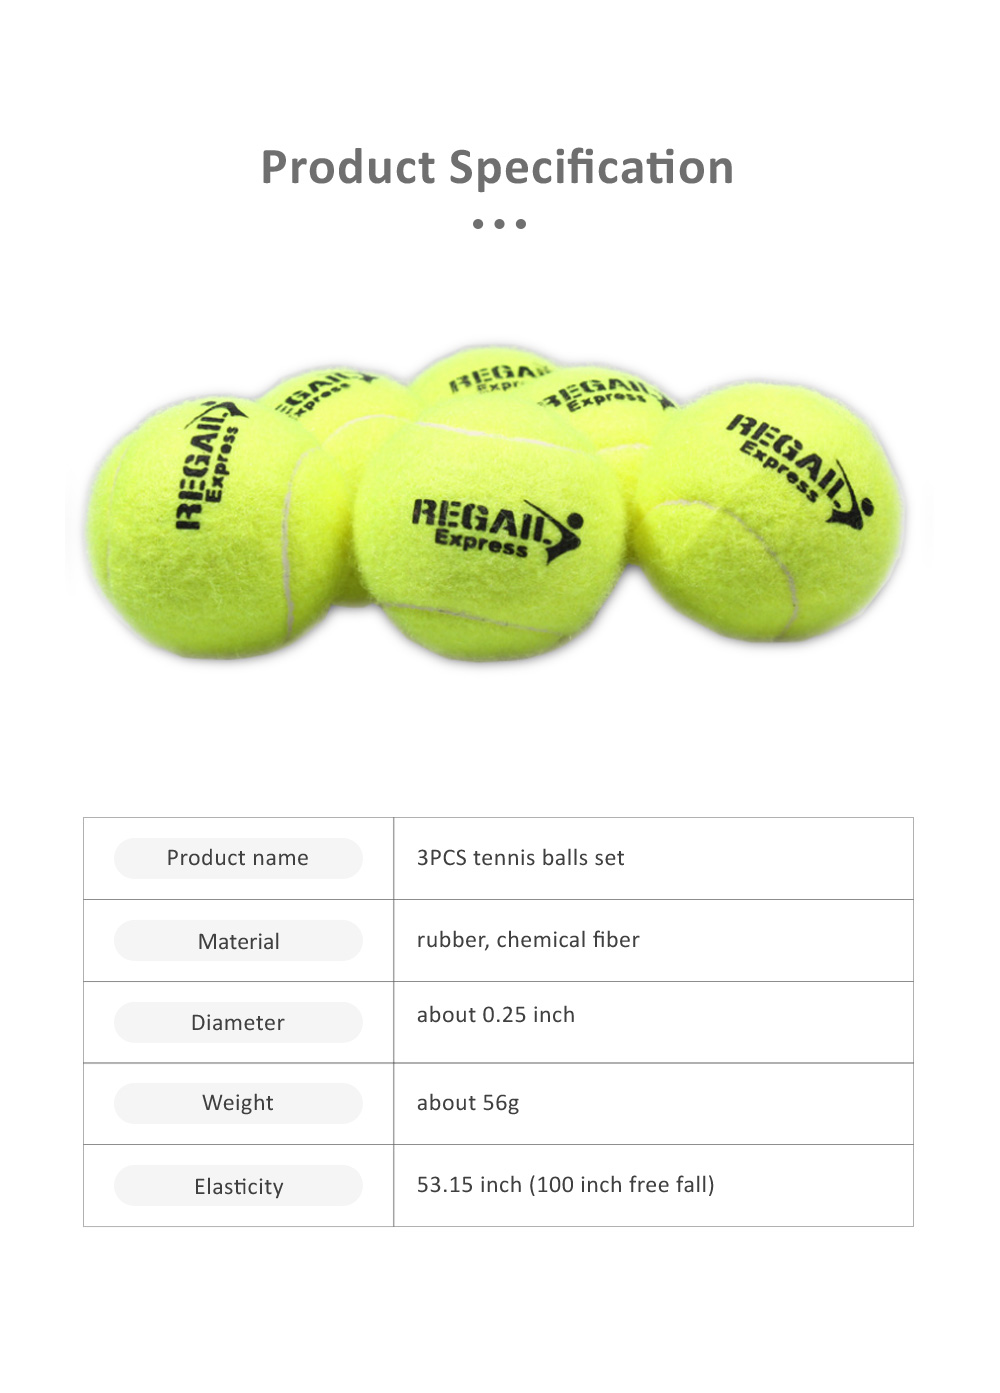 3PCS General Teenagers Training Pressure Tennis Balls Set, Delicate Durable Elastic Rubber Practice Tennis 5